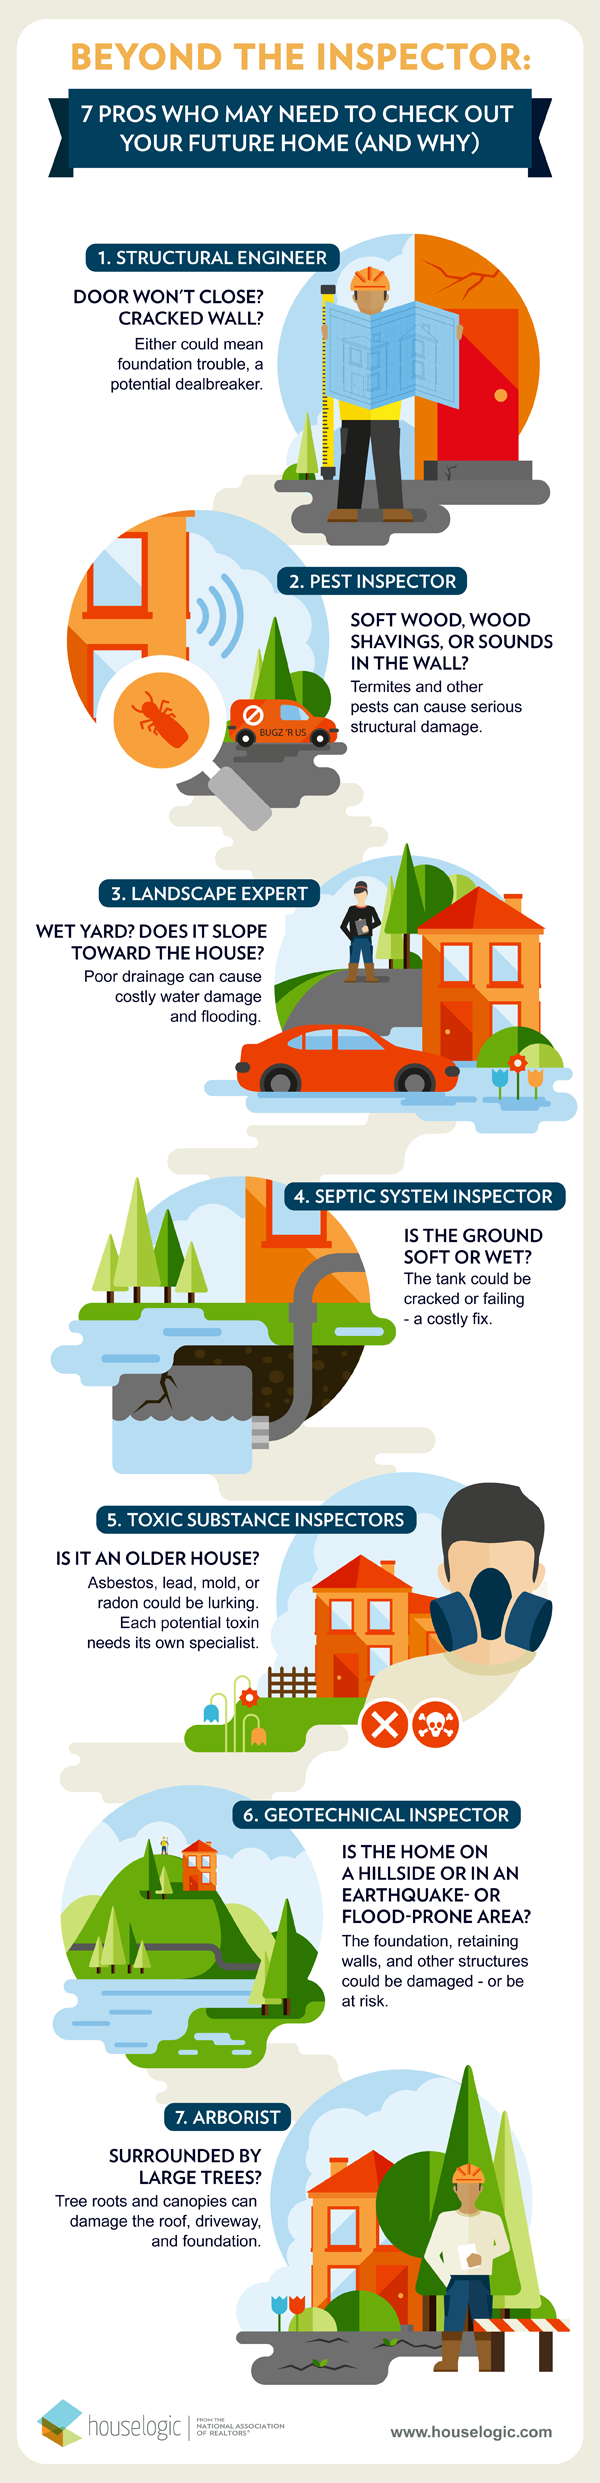 Home inspection checklist infographic